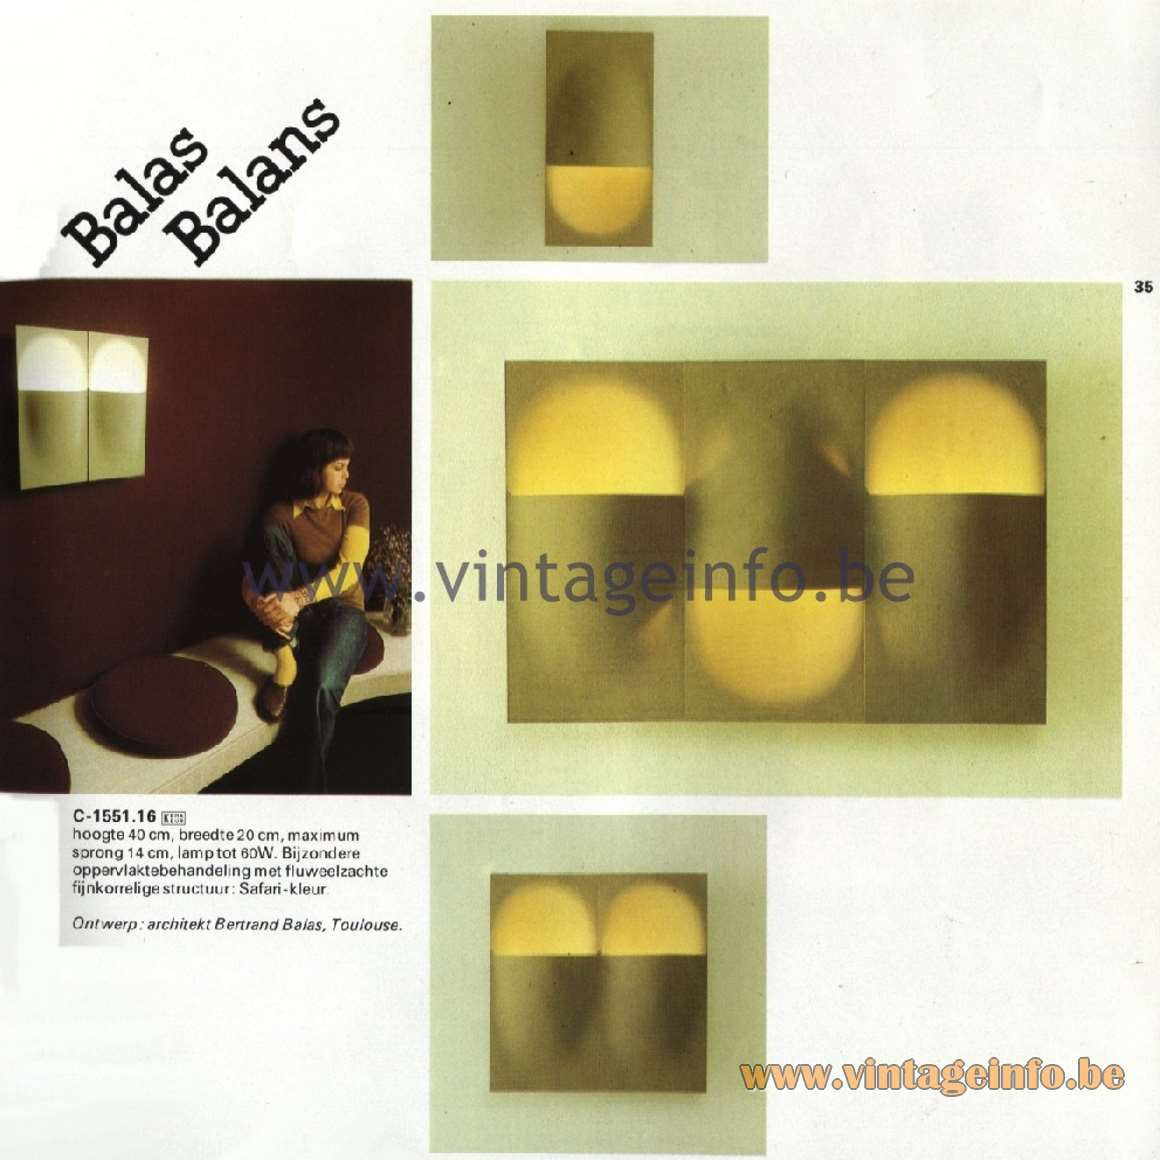 Raak Amsterdam Light Catalogue 11, 1978 - Raak Balans Wall Lamps C-1551.16